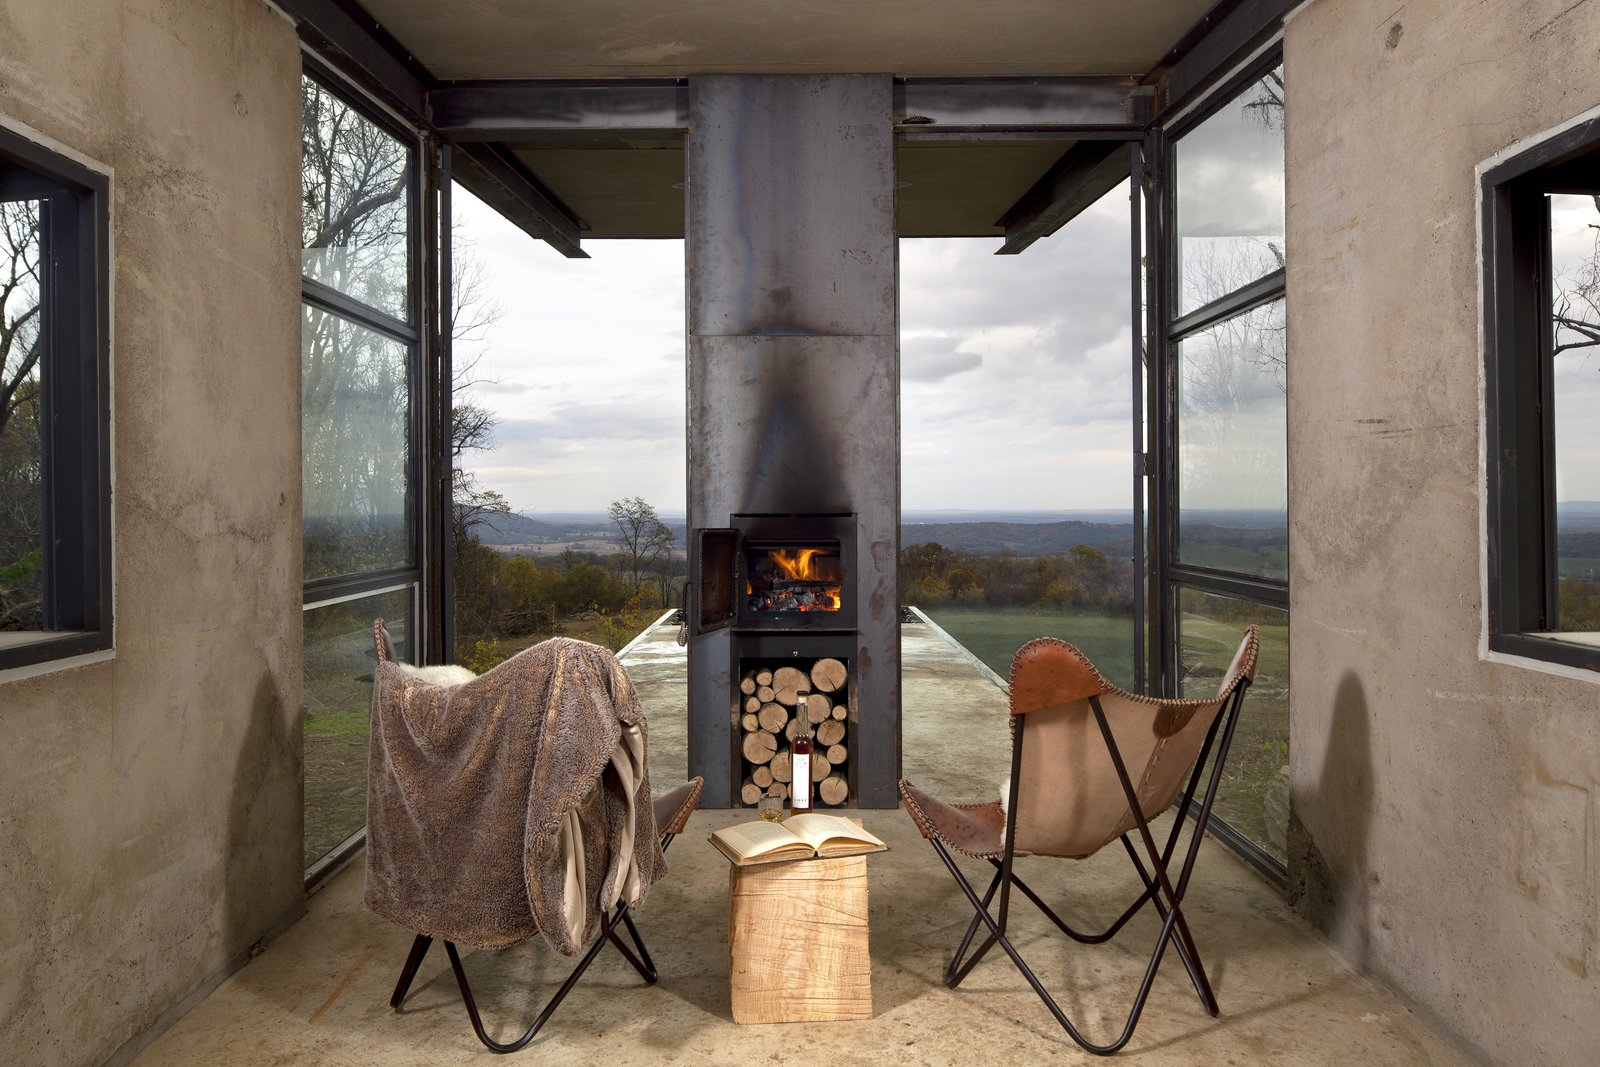 Chairs facing wood burning stove and windows